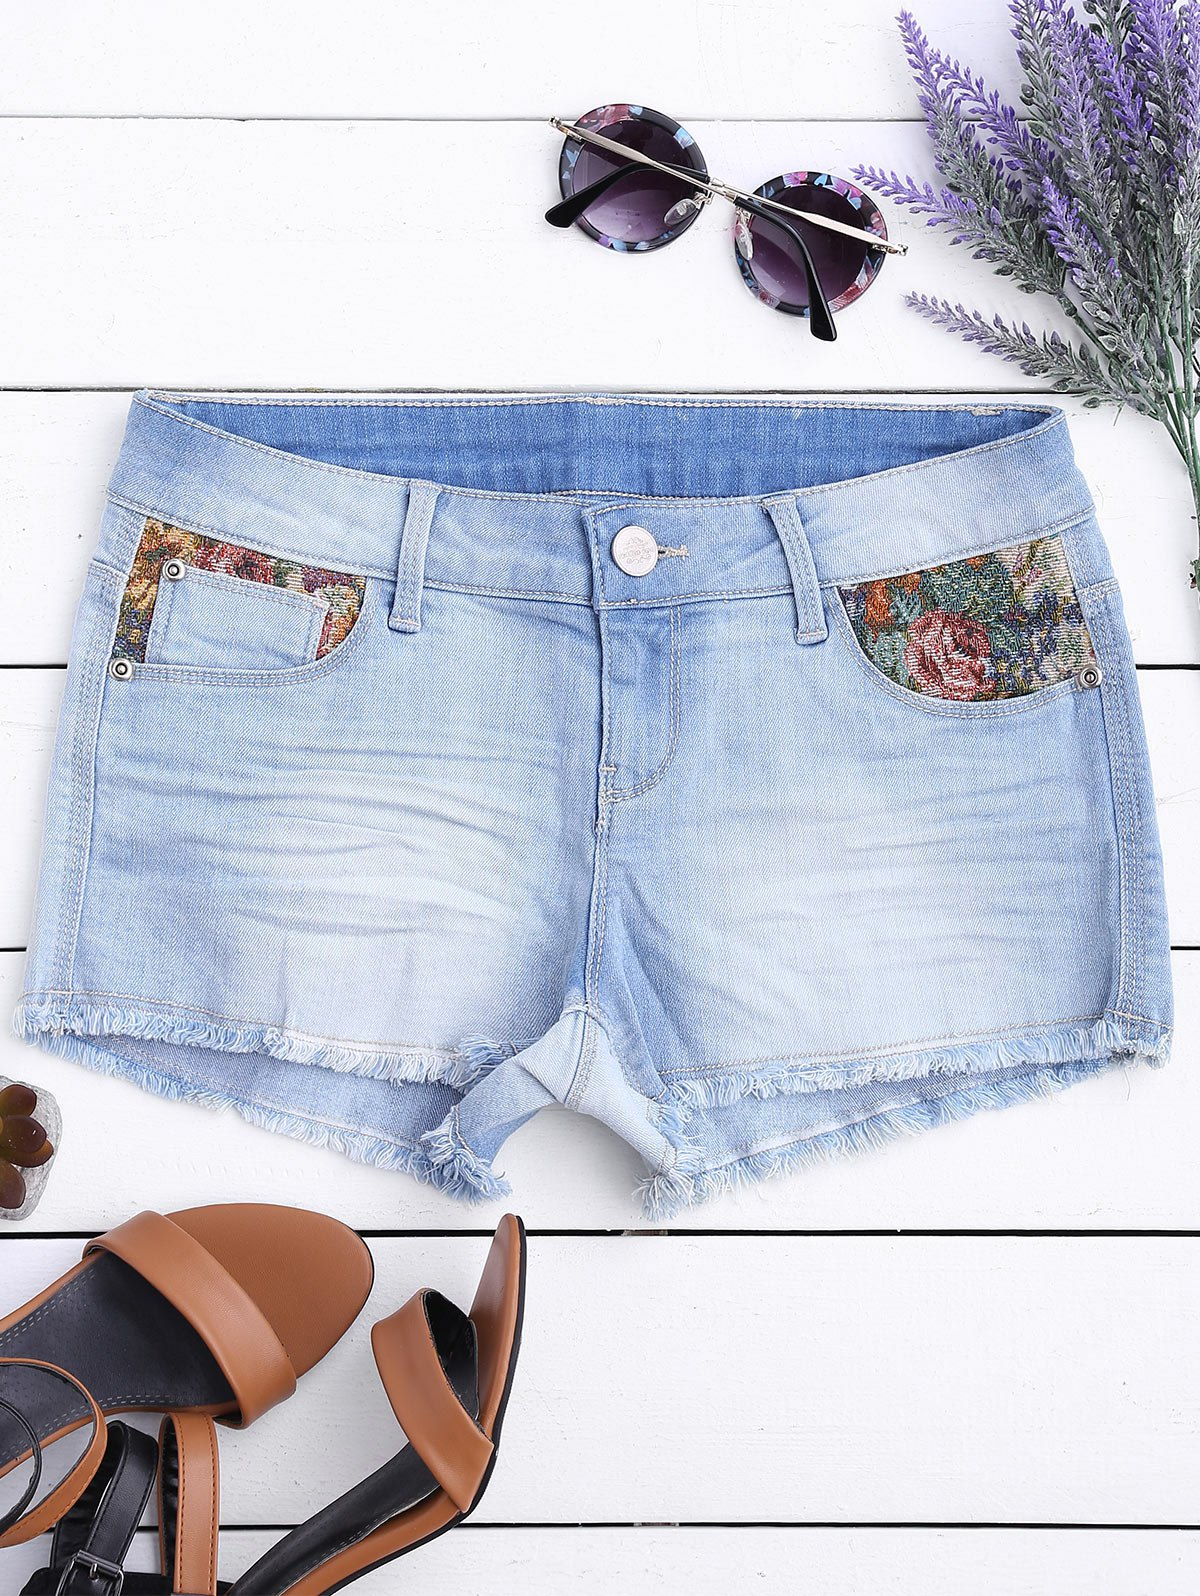 Graphic Cutoffs Distressed Denim Shorts 217376704